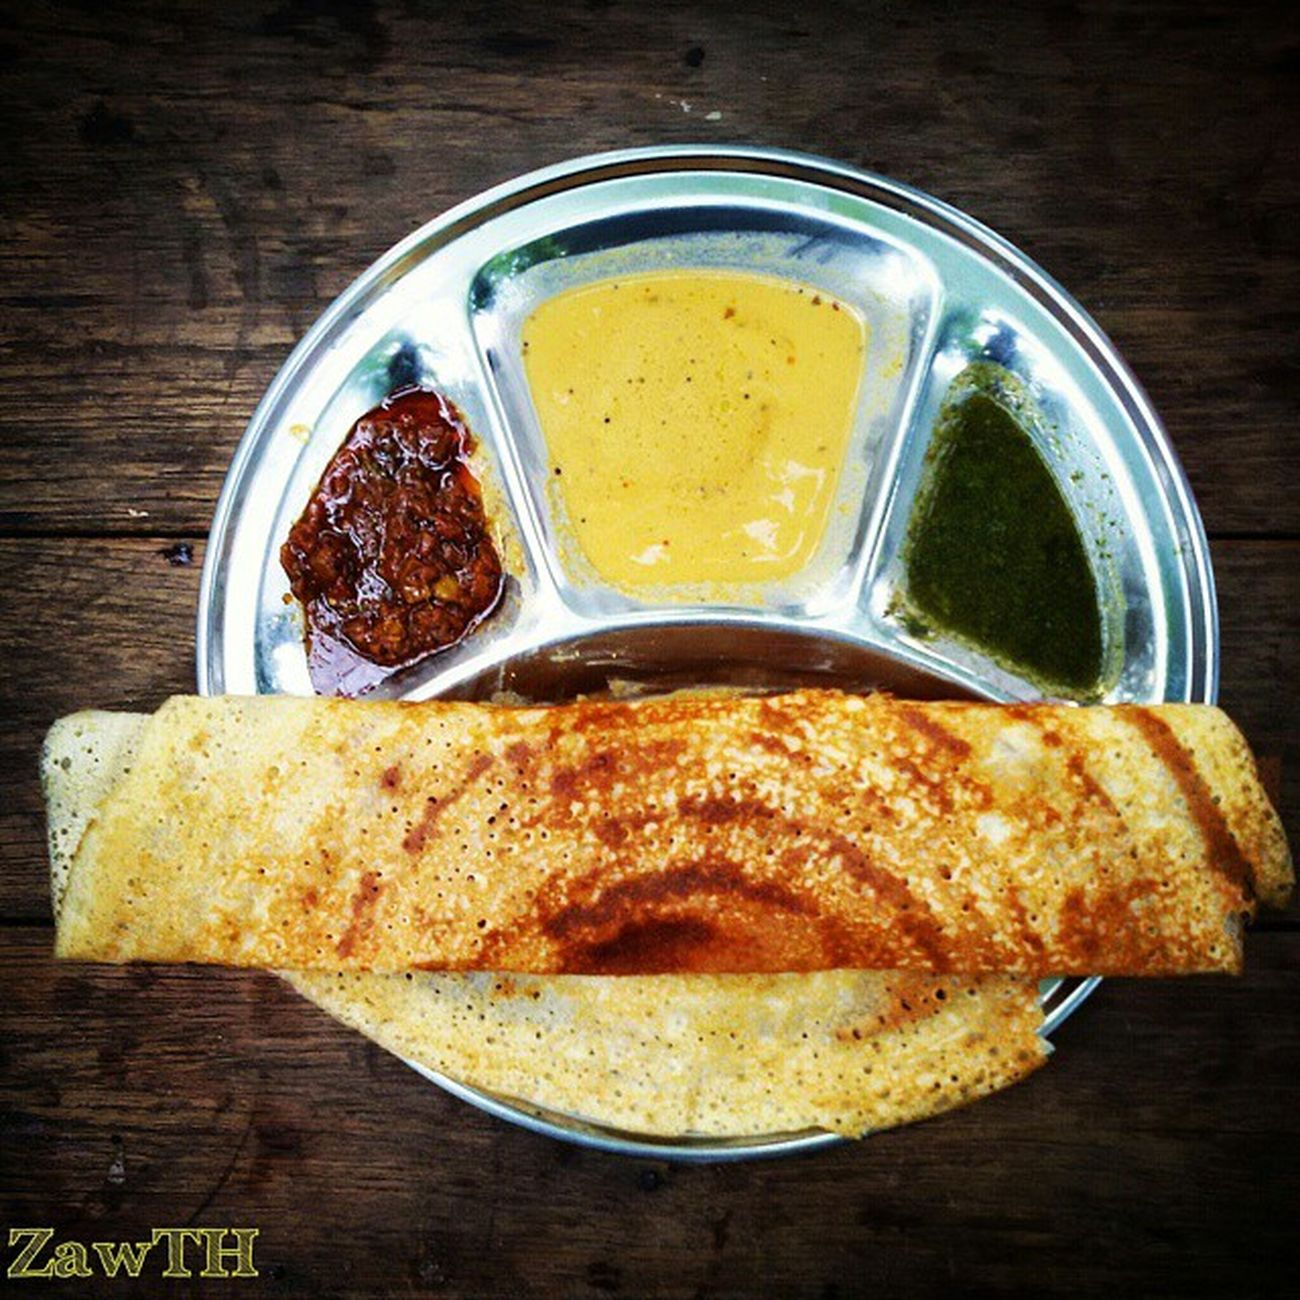 Indian food `Dosa´. Dosa Indianfood Streetfoodgoodtaste StreetFoodAroundTheWorld Streetfoodlover Mandalay Myanmar Myanmarphotos Burma Foodporn Igers Igersmyanmar Igersmandalay Ig_photo_life Igglobal India Igs_asia Instalife_shot Zawth GalaxyGrand2 Goldenland Myanmar Goldenland Goldenlandmyanmar Mycapture Bsnfamily conpixel hot_shotz nepal phonephotography